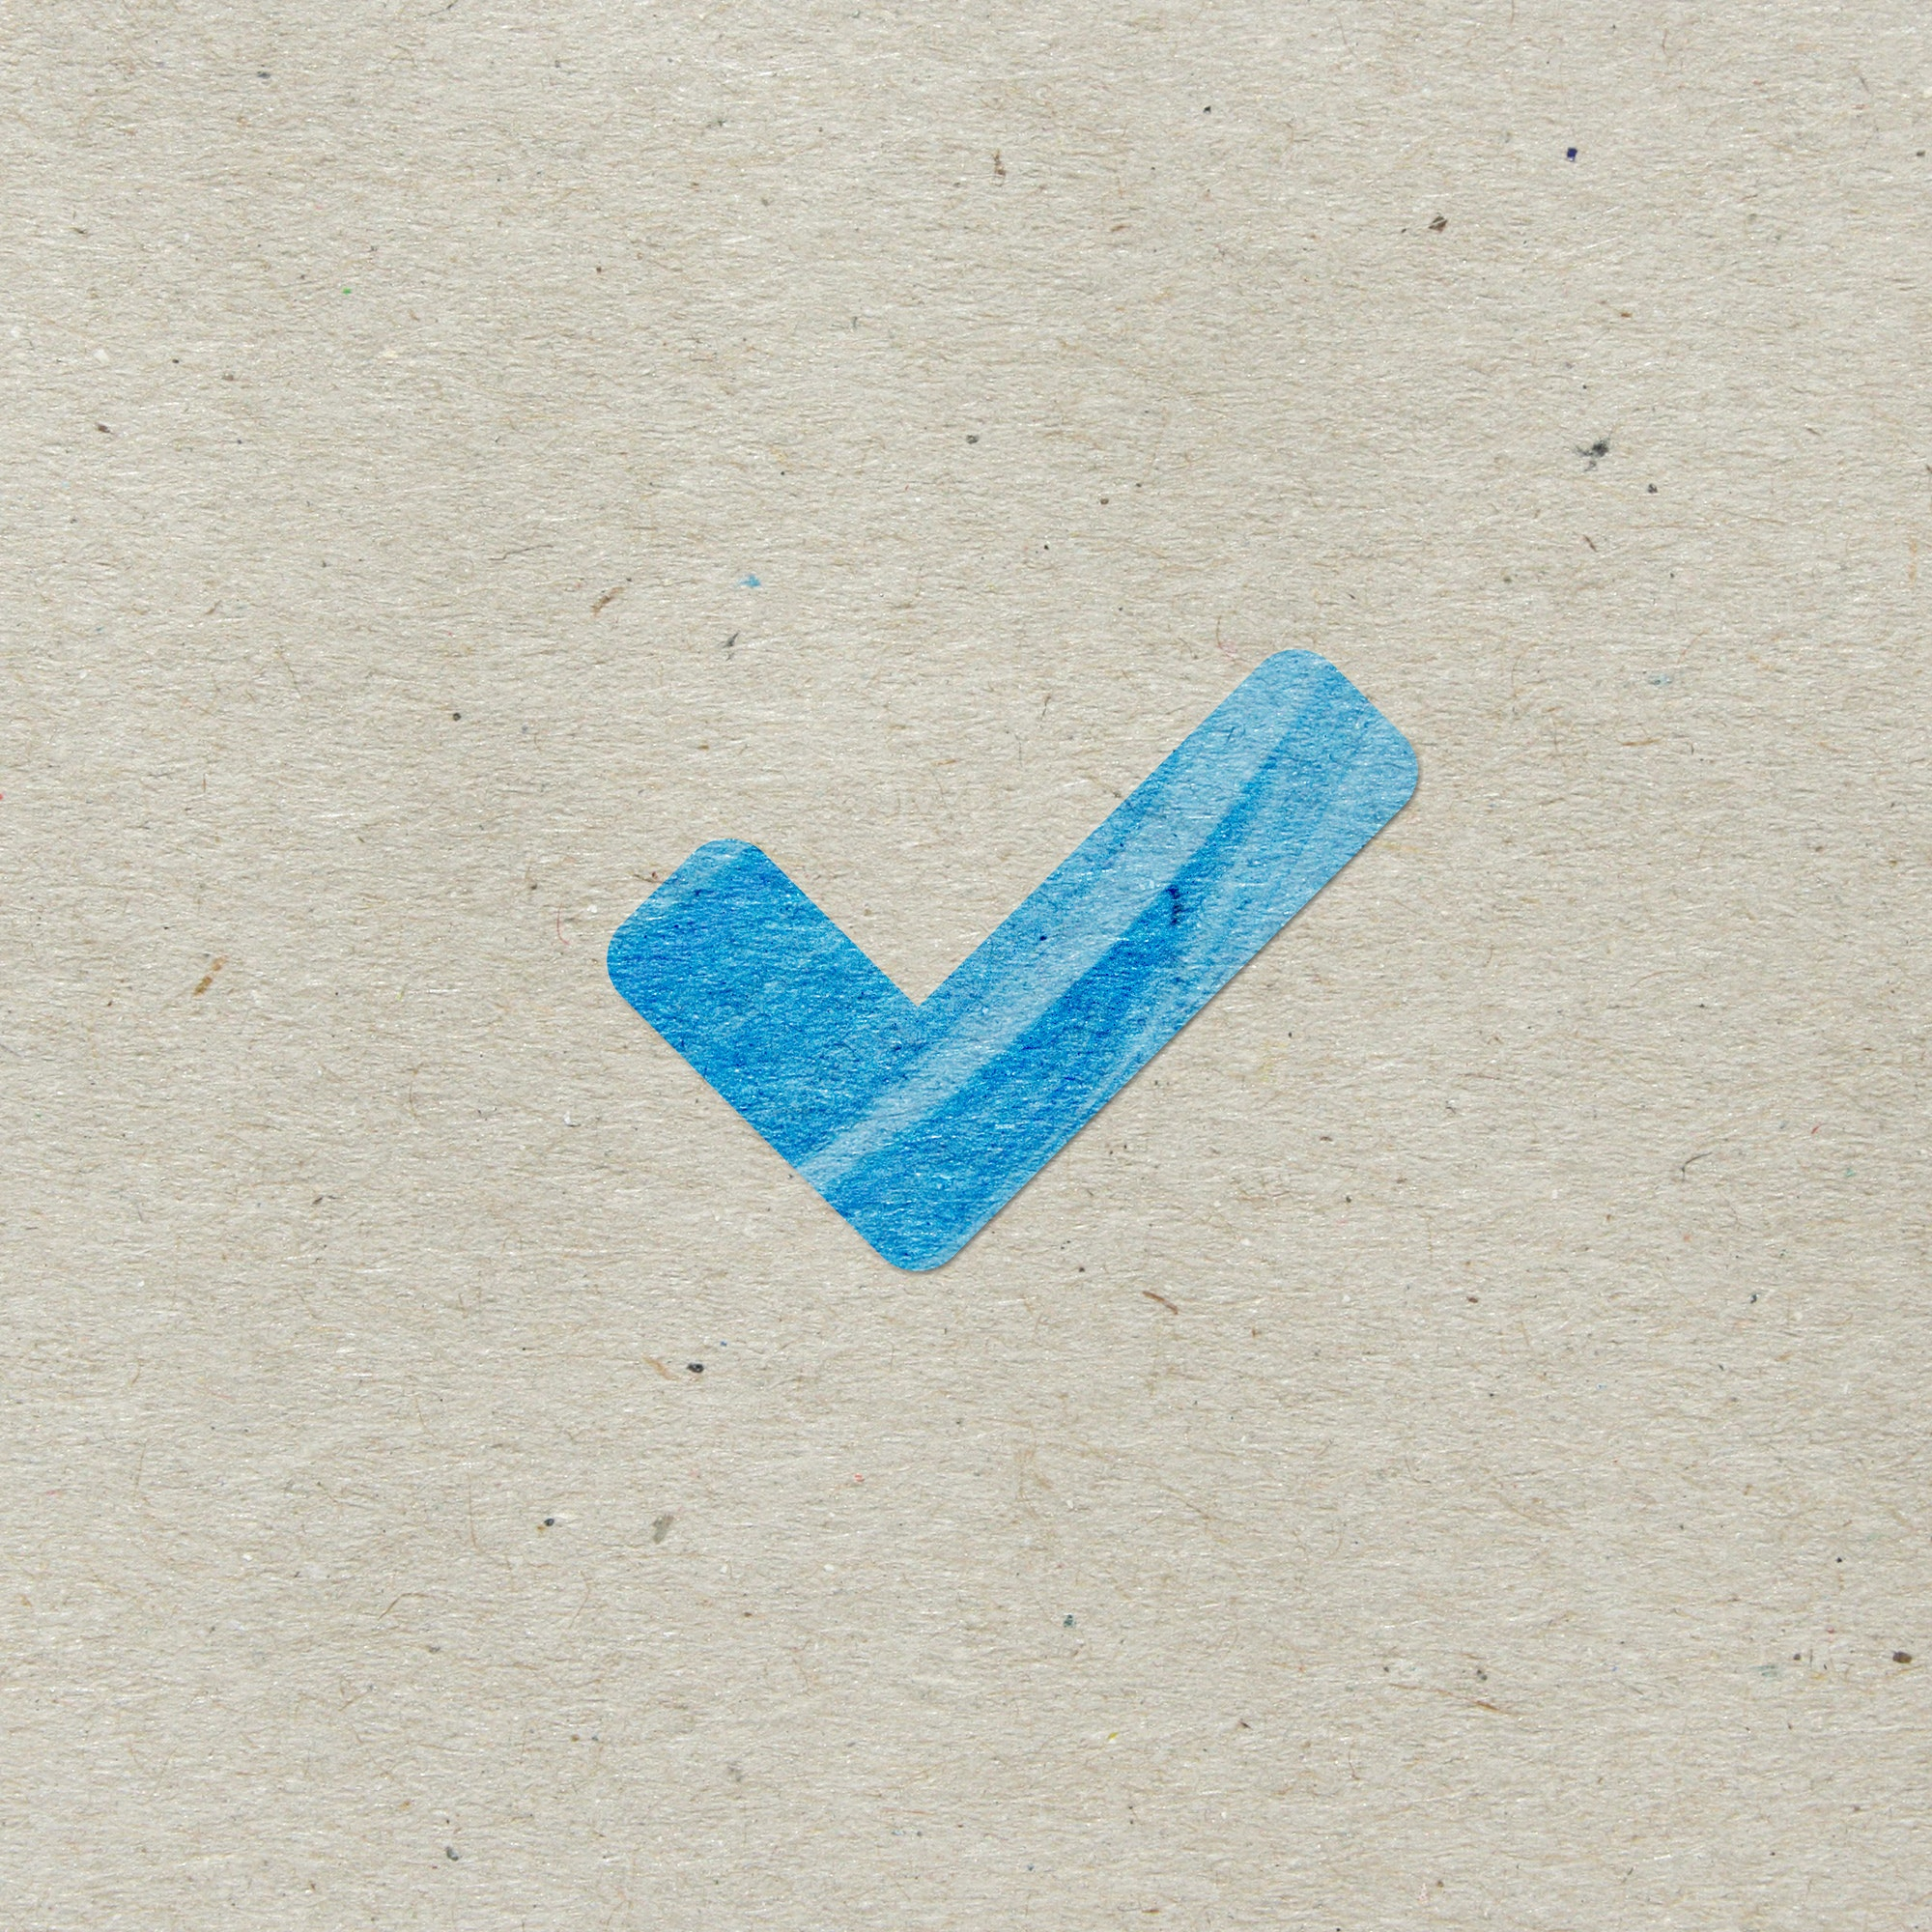 Check Mark paint icon